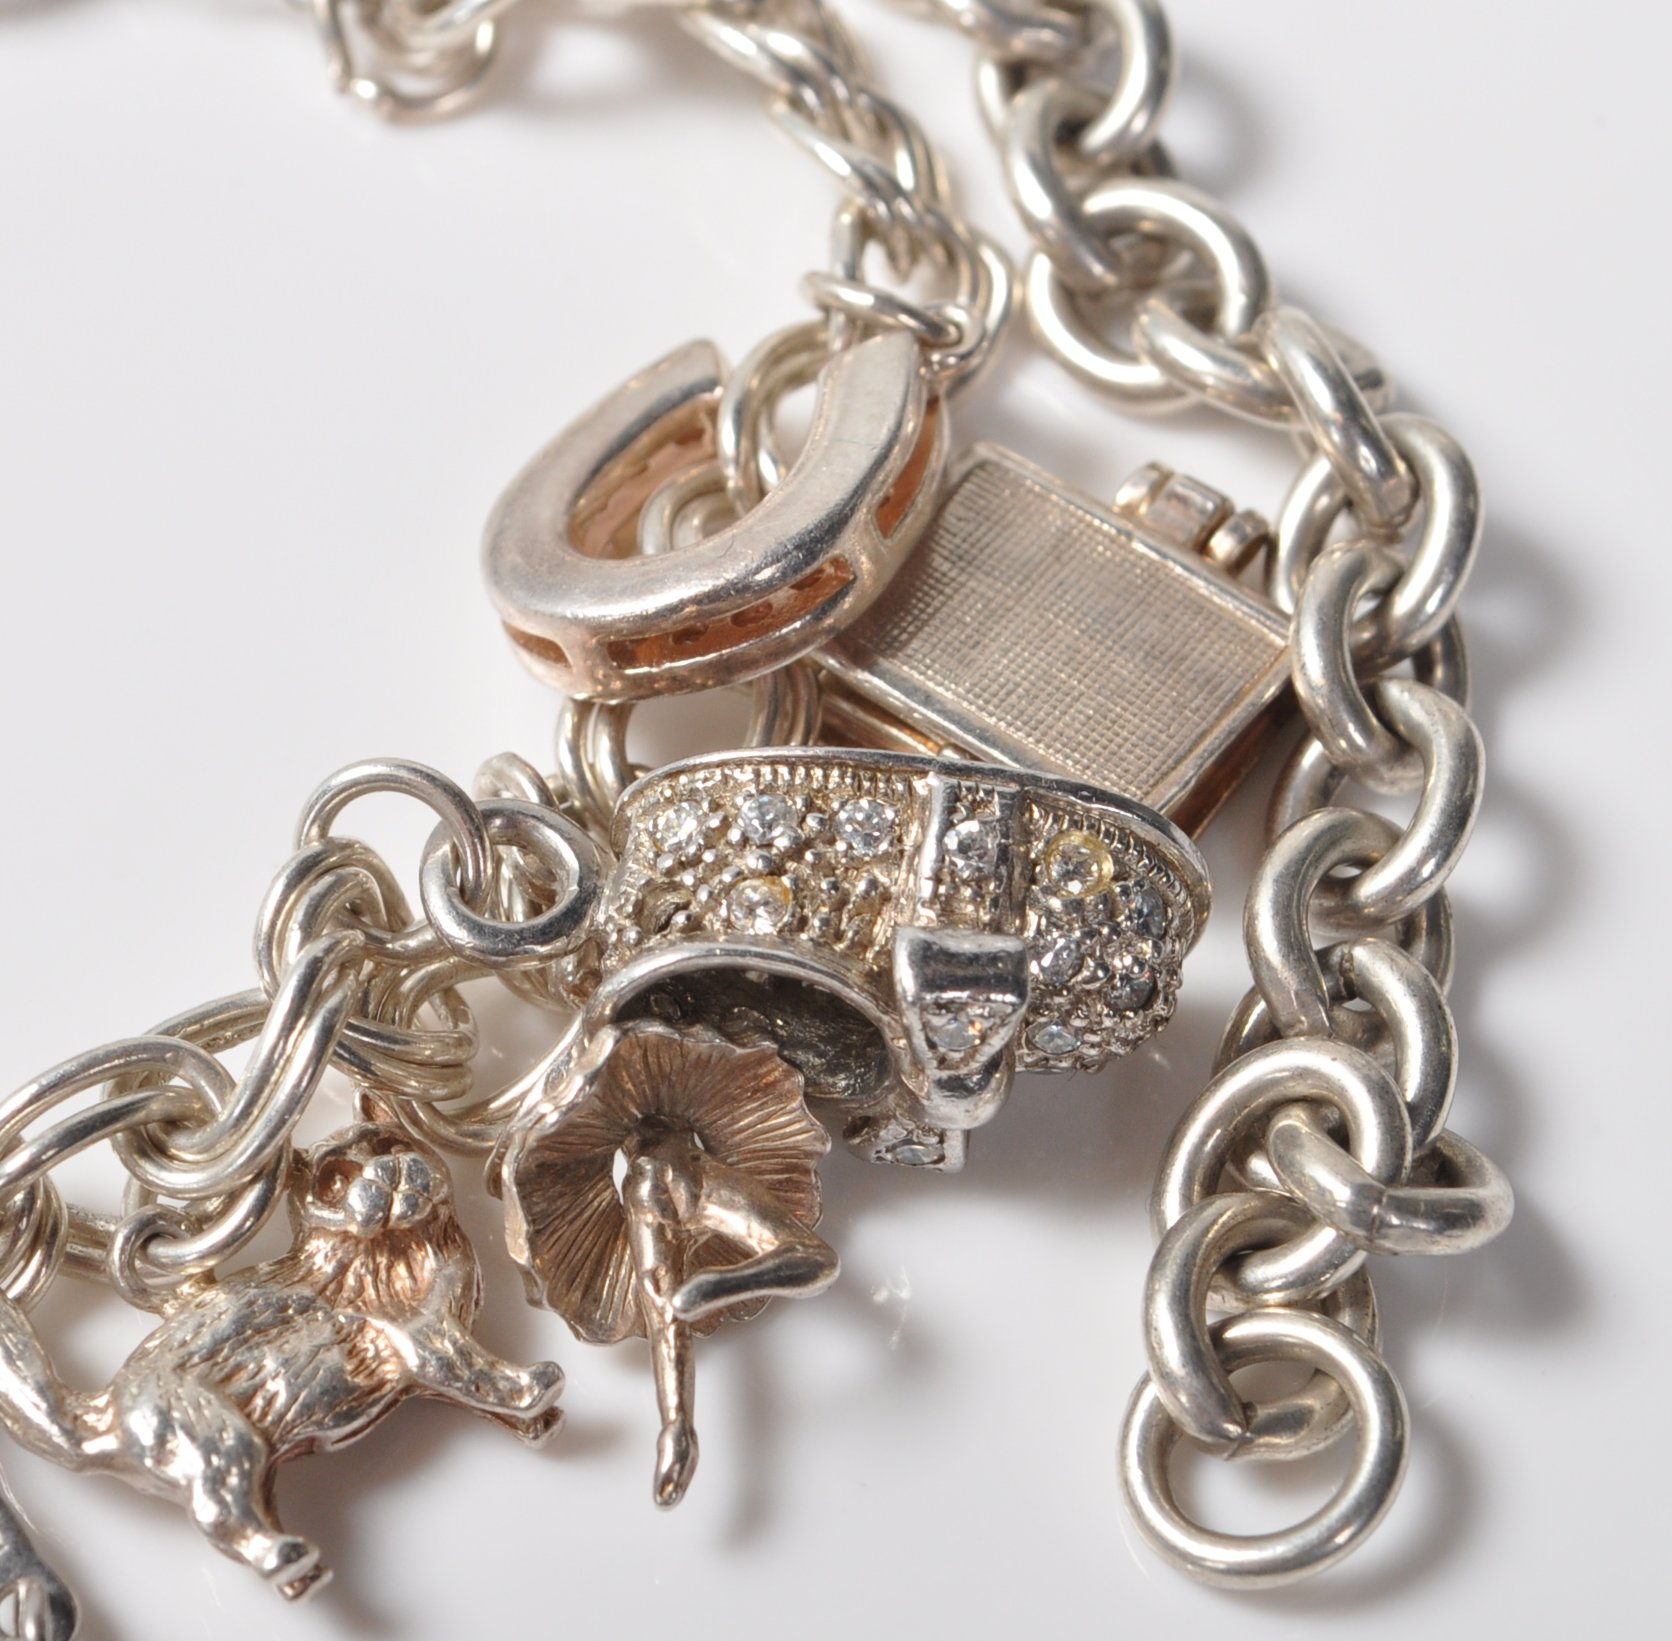 SILVER STAMPED 925 CHARM BRACELET. TOTAL WEIGHT 64 GRAMS. - Image 4 of 8